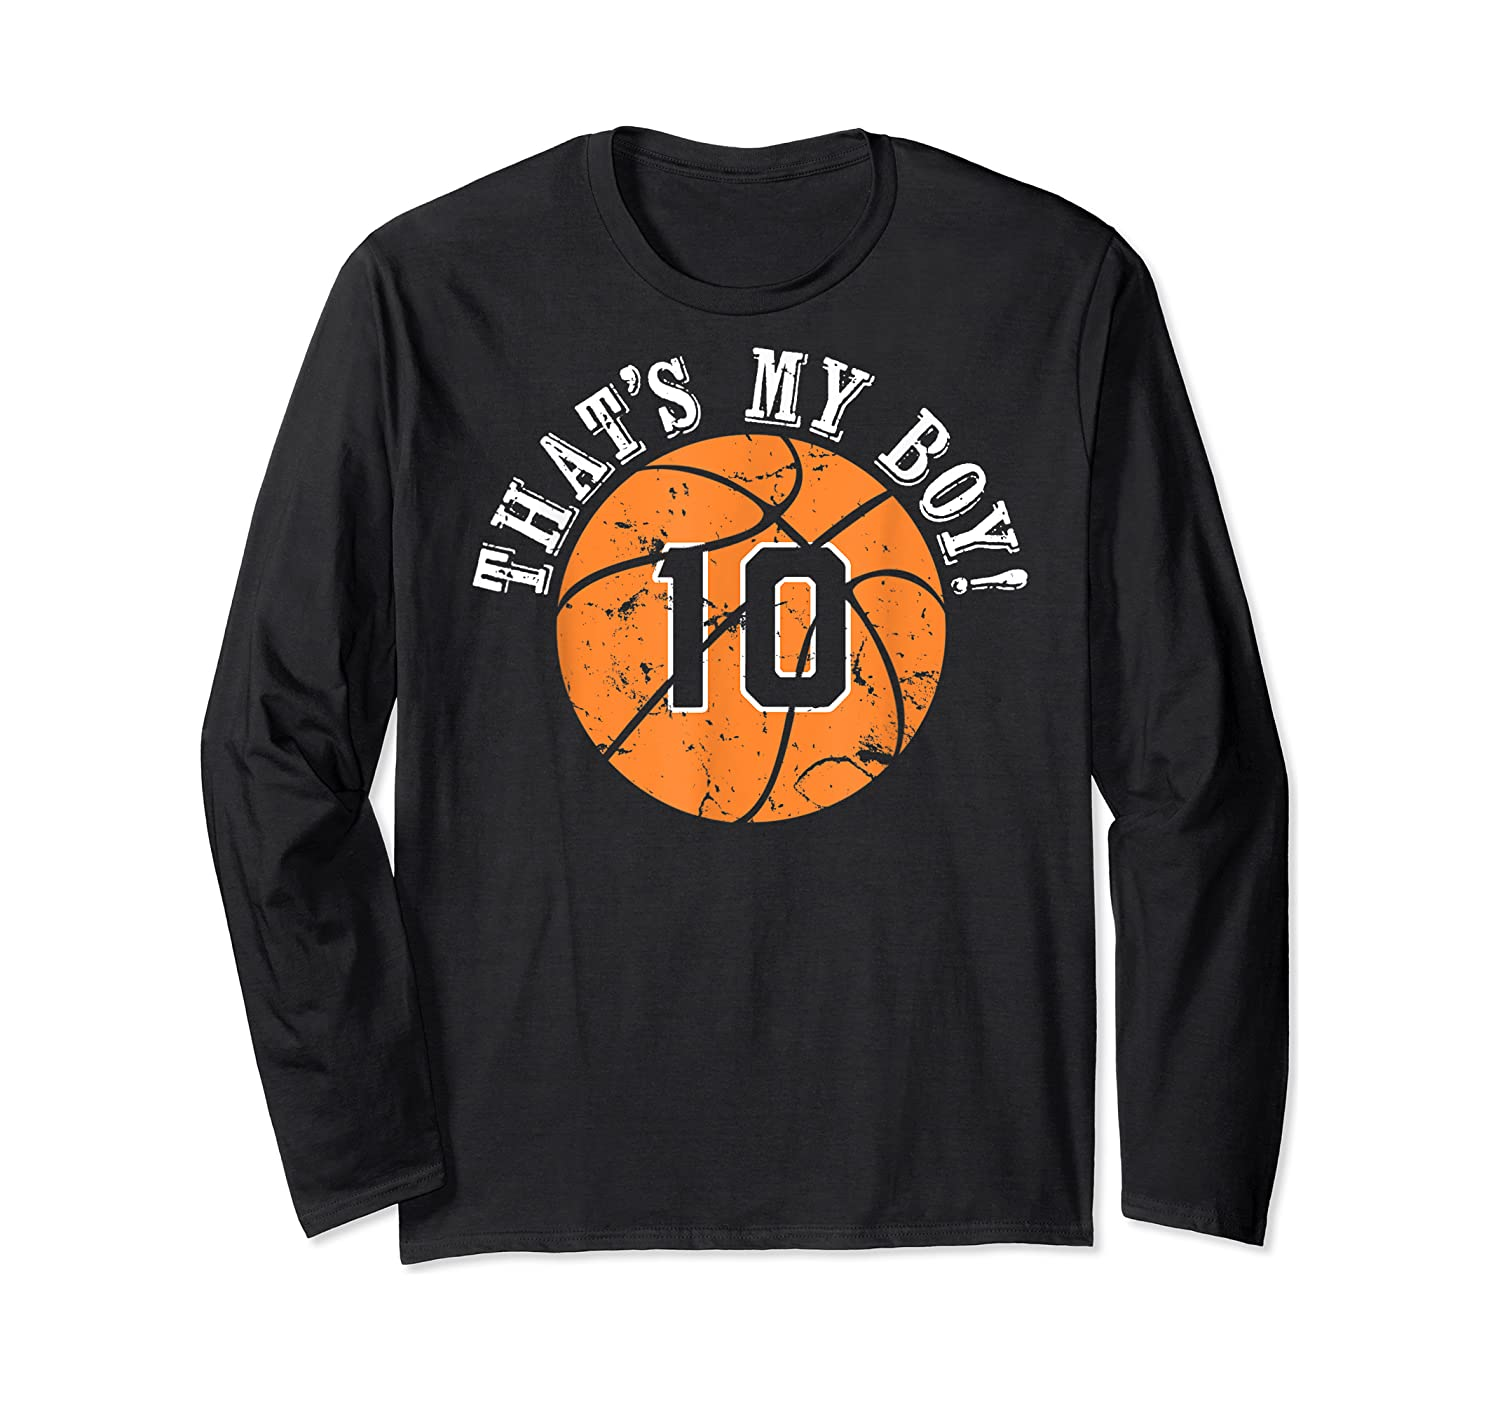 Unique That's My Boy #10 Basketball Player Mom Or Dad Gifts T-shirt Long Sleeve T-shirt